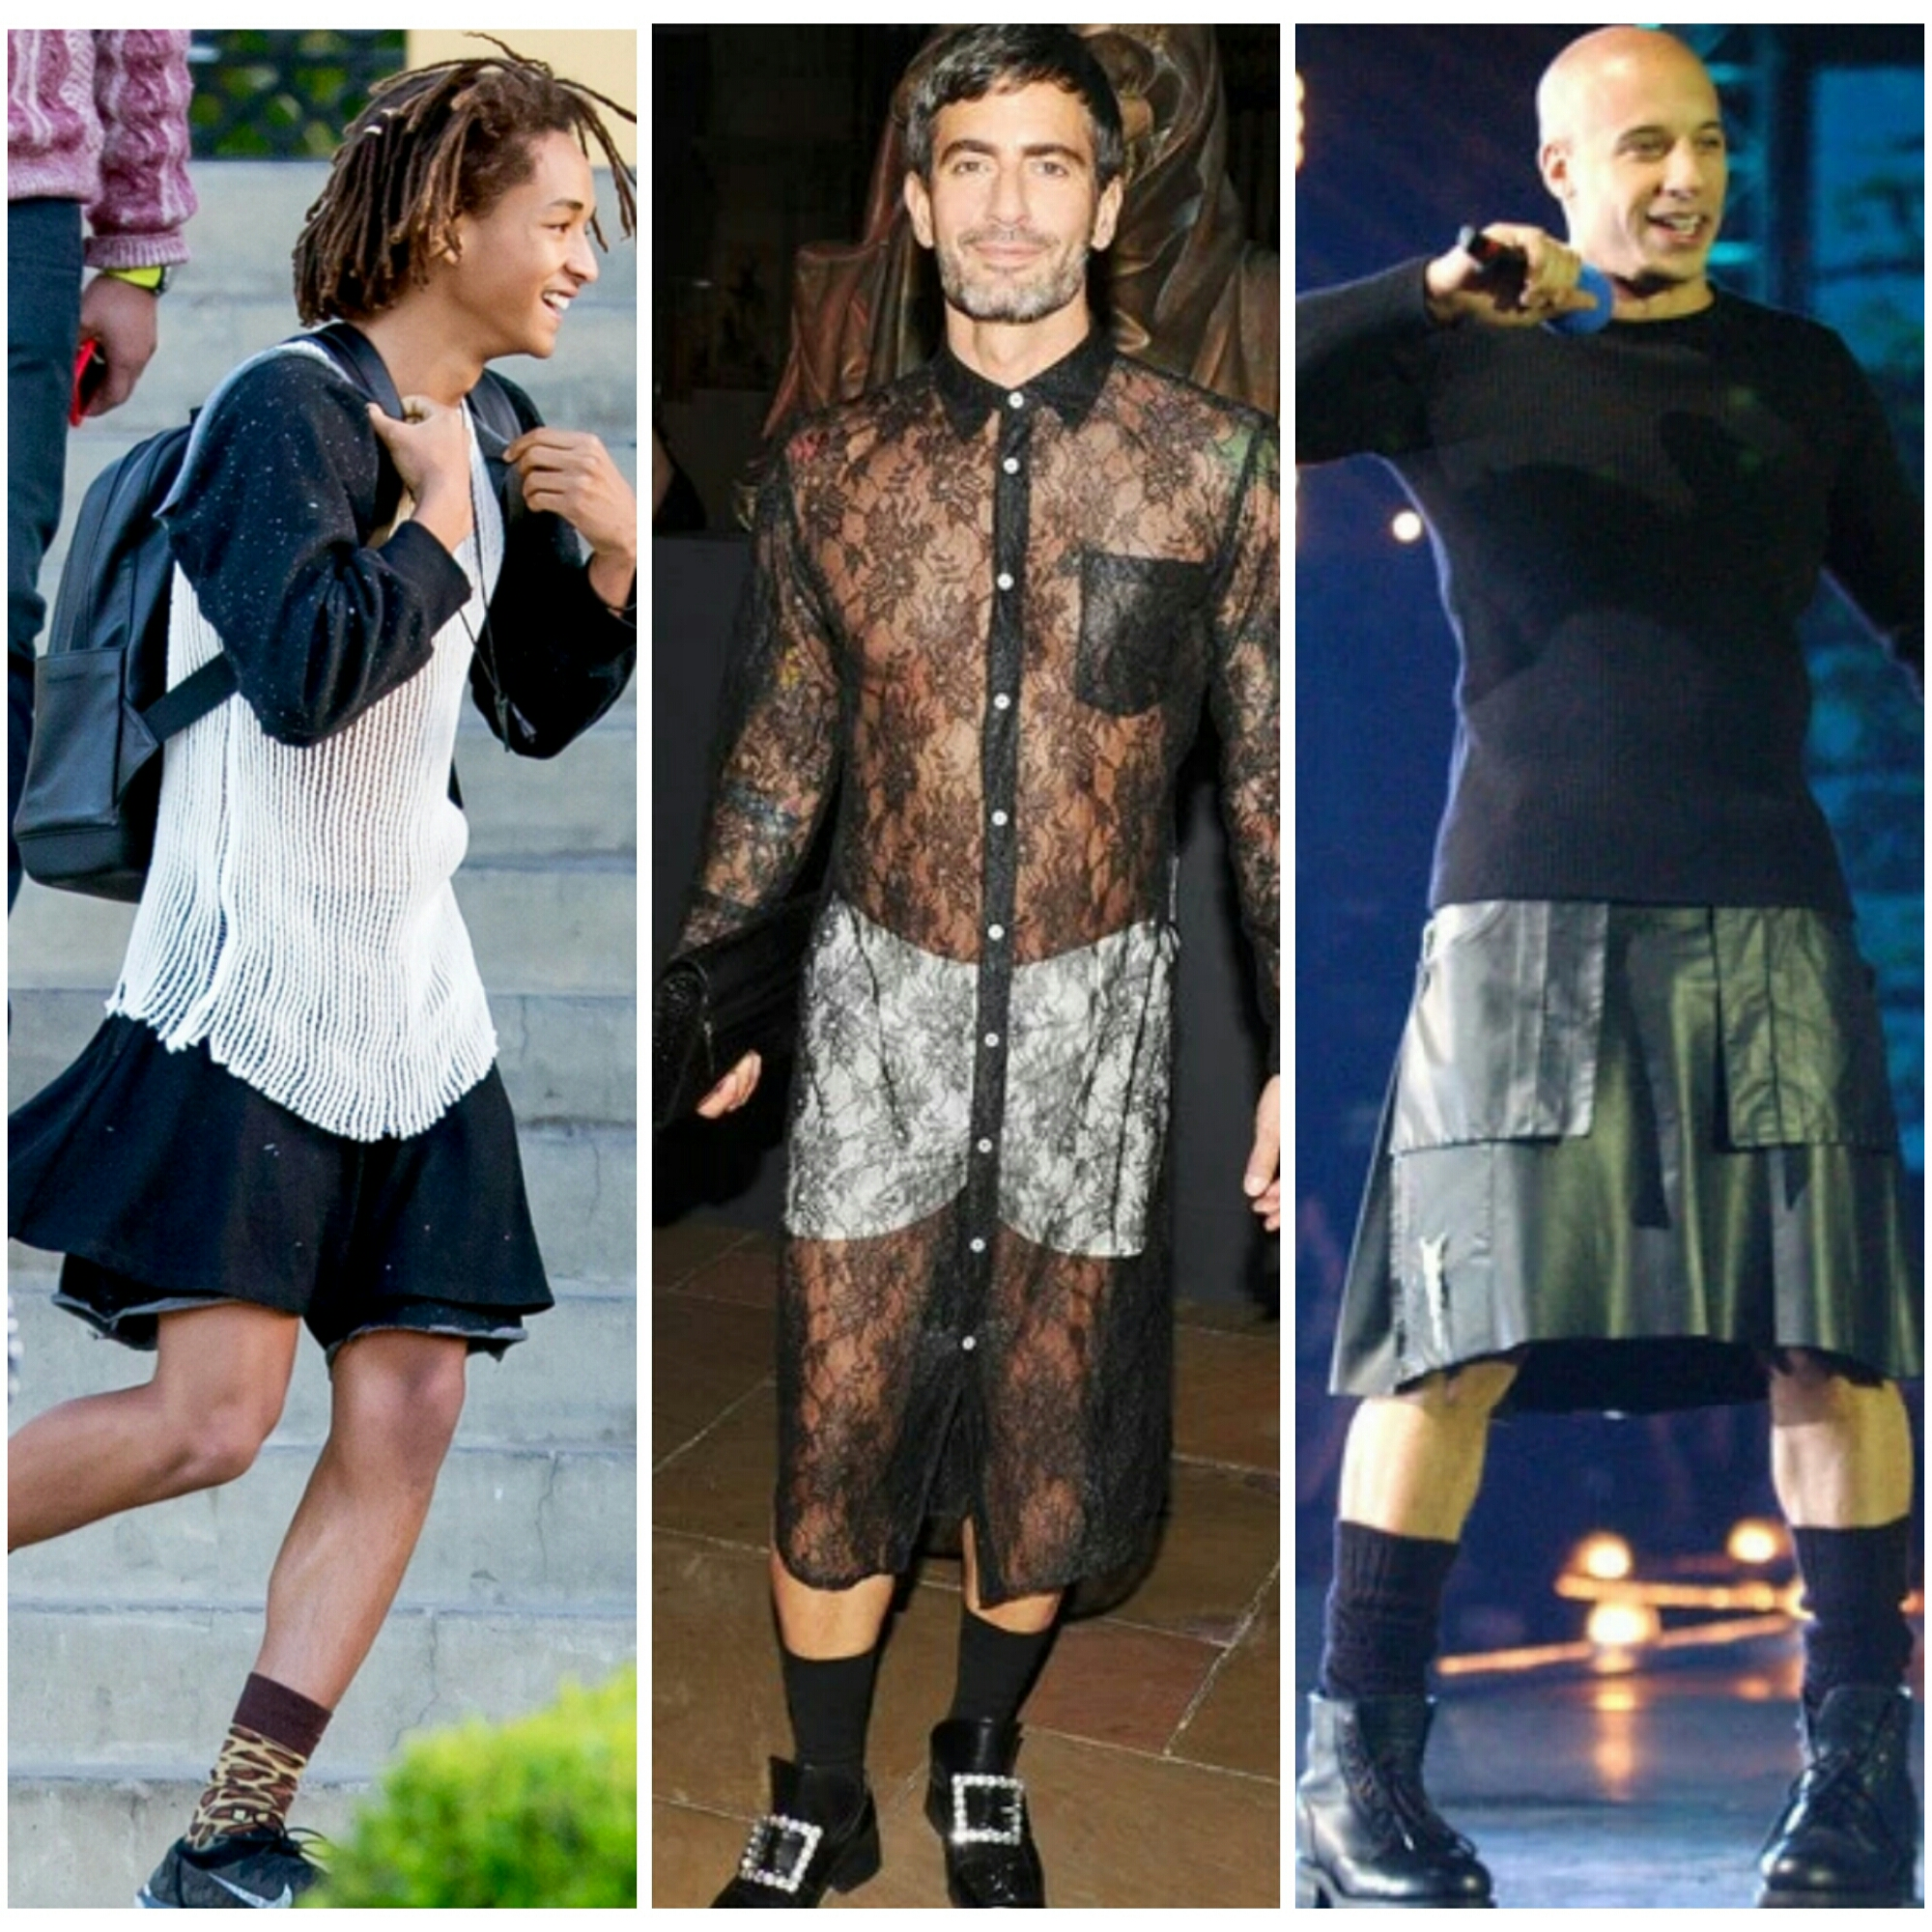 Ladies How Would You Feel If Your Man Showed Up In Women's Wear